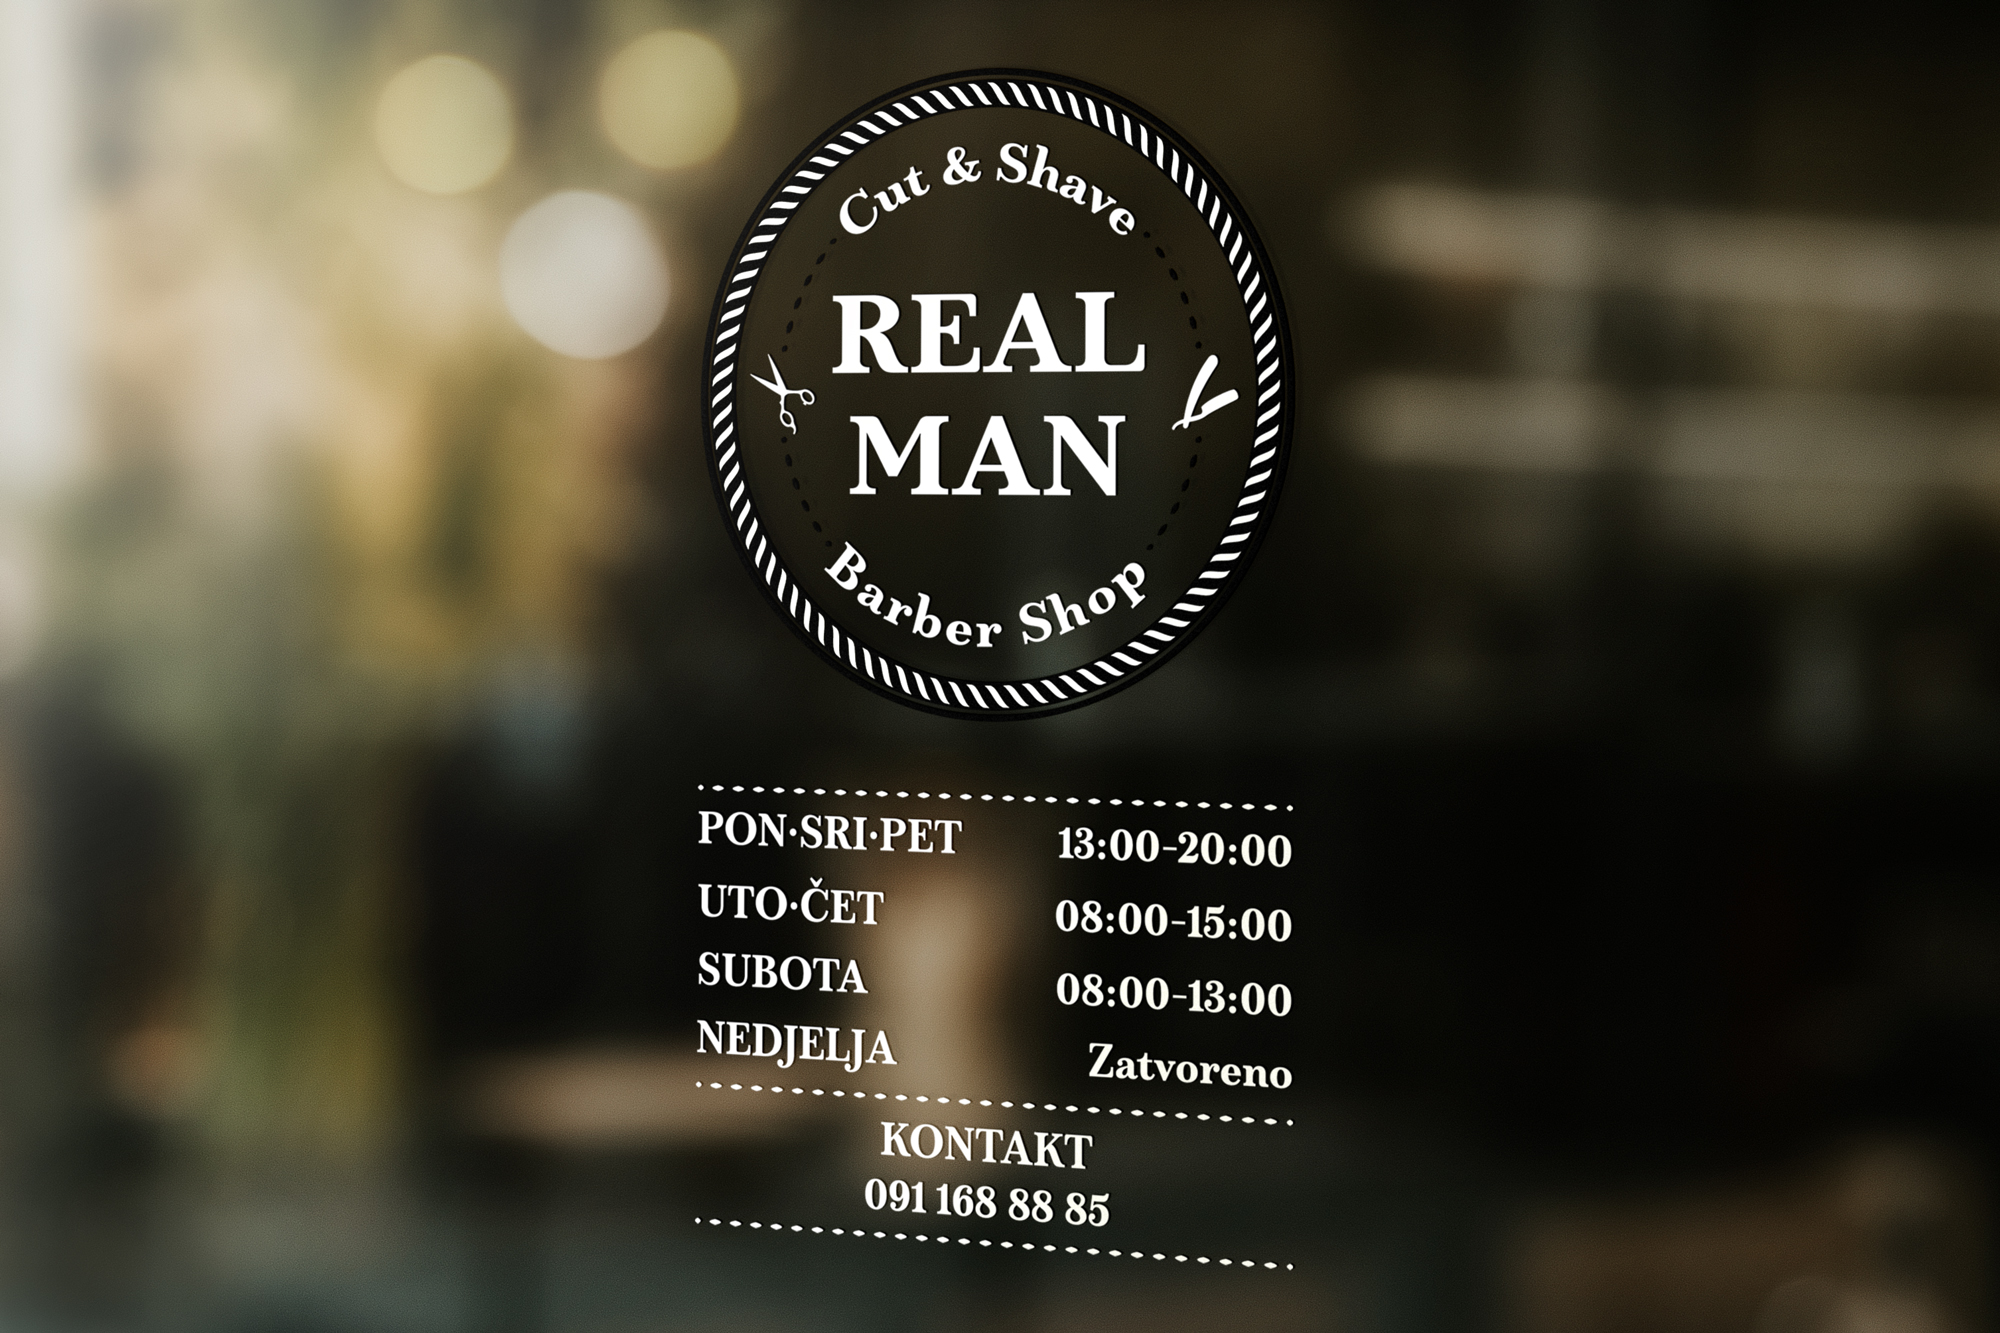 REAL MAN BARBER SHOP